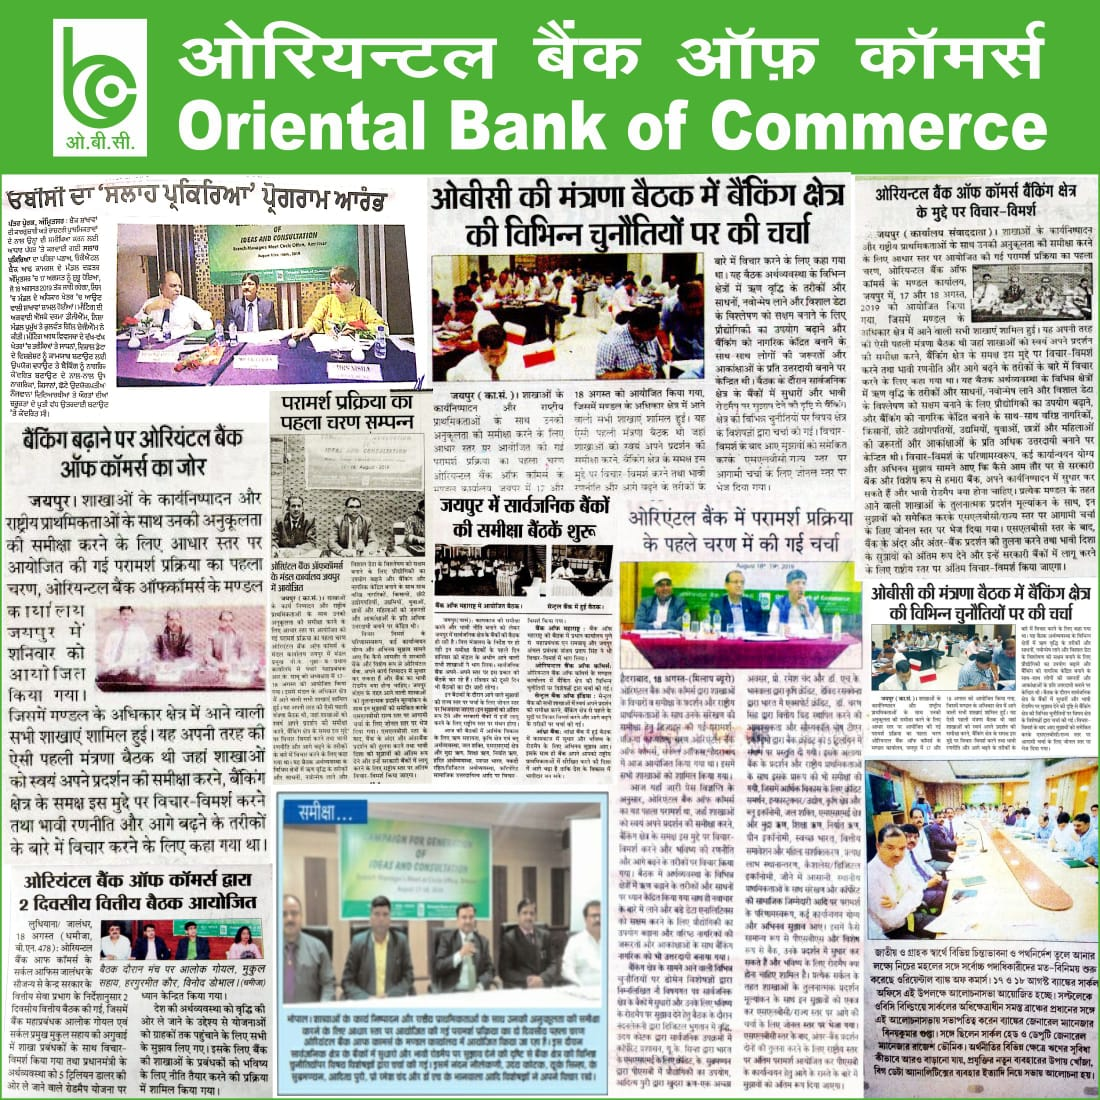 OBC in News 2